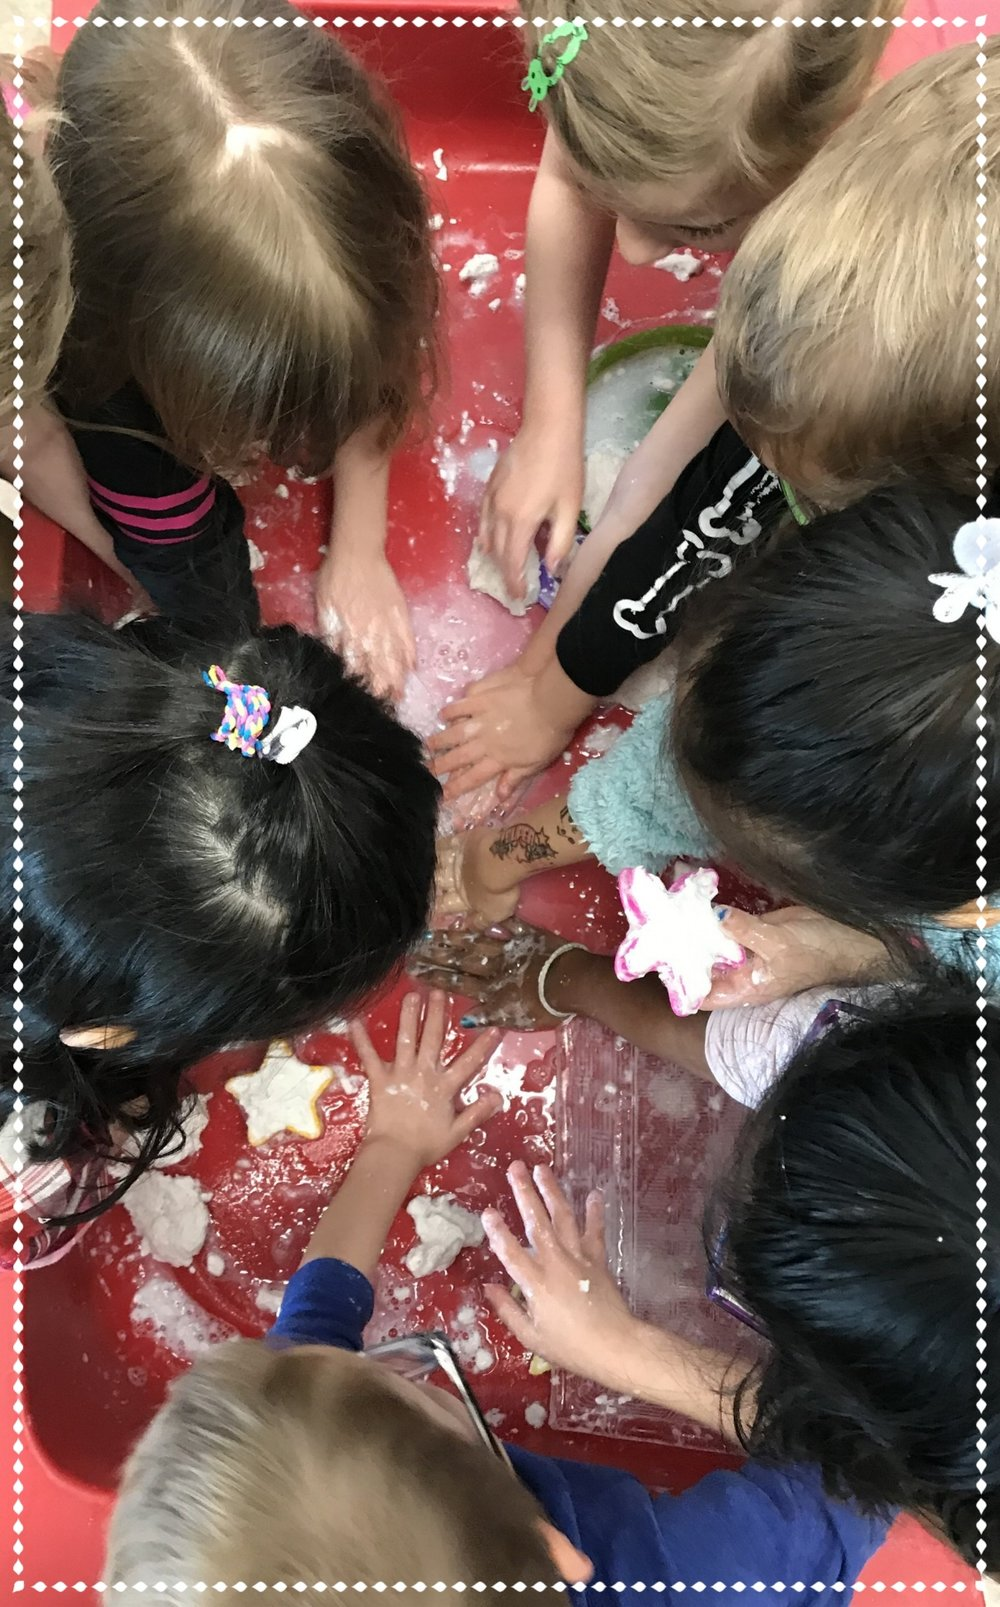 Nature-based, child-lead programming creates a warm environment for students at Discovery Place Dr. Lila Fahlman to grow